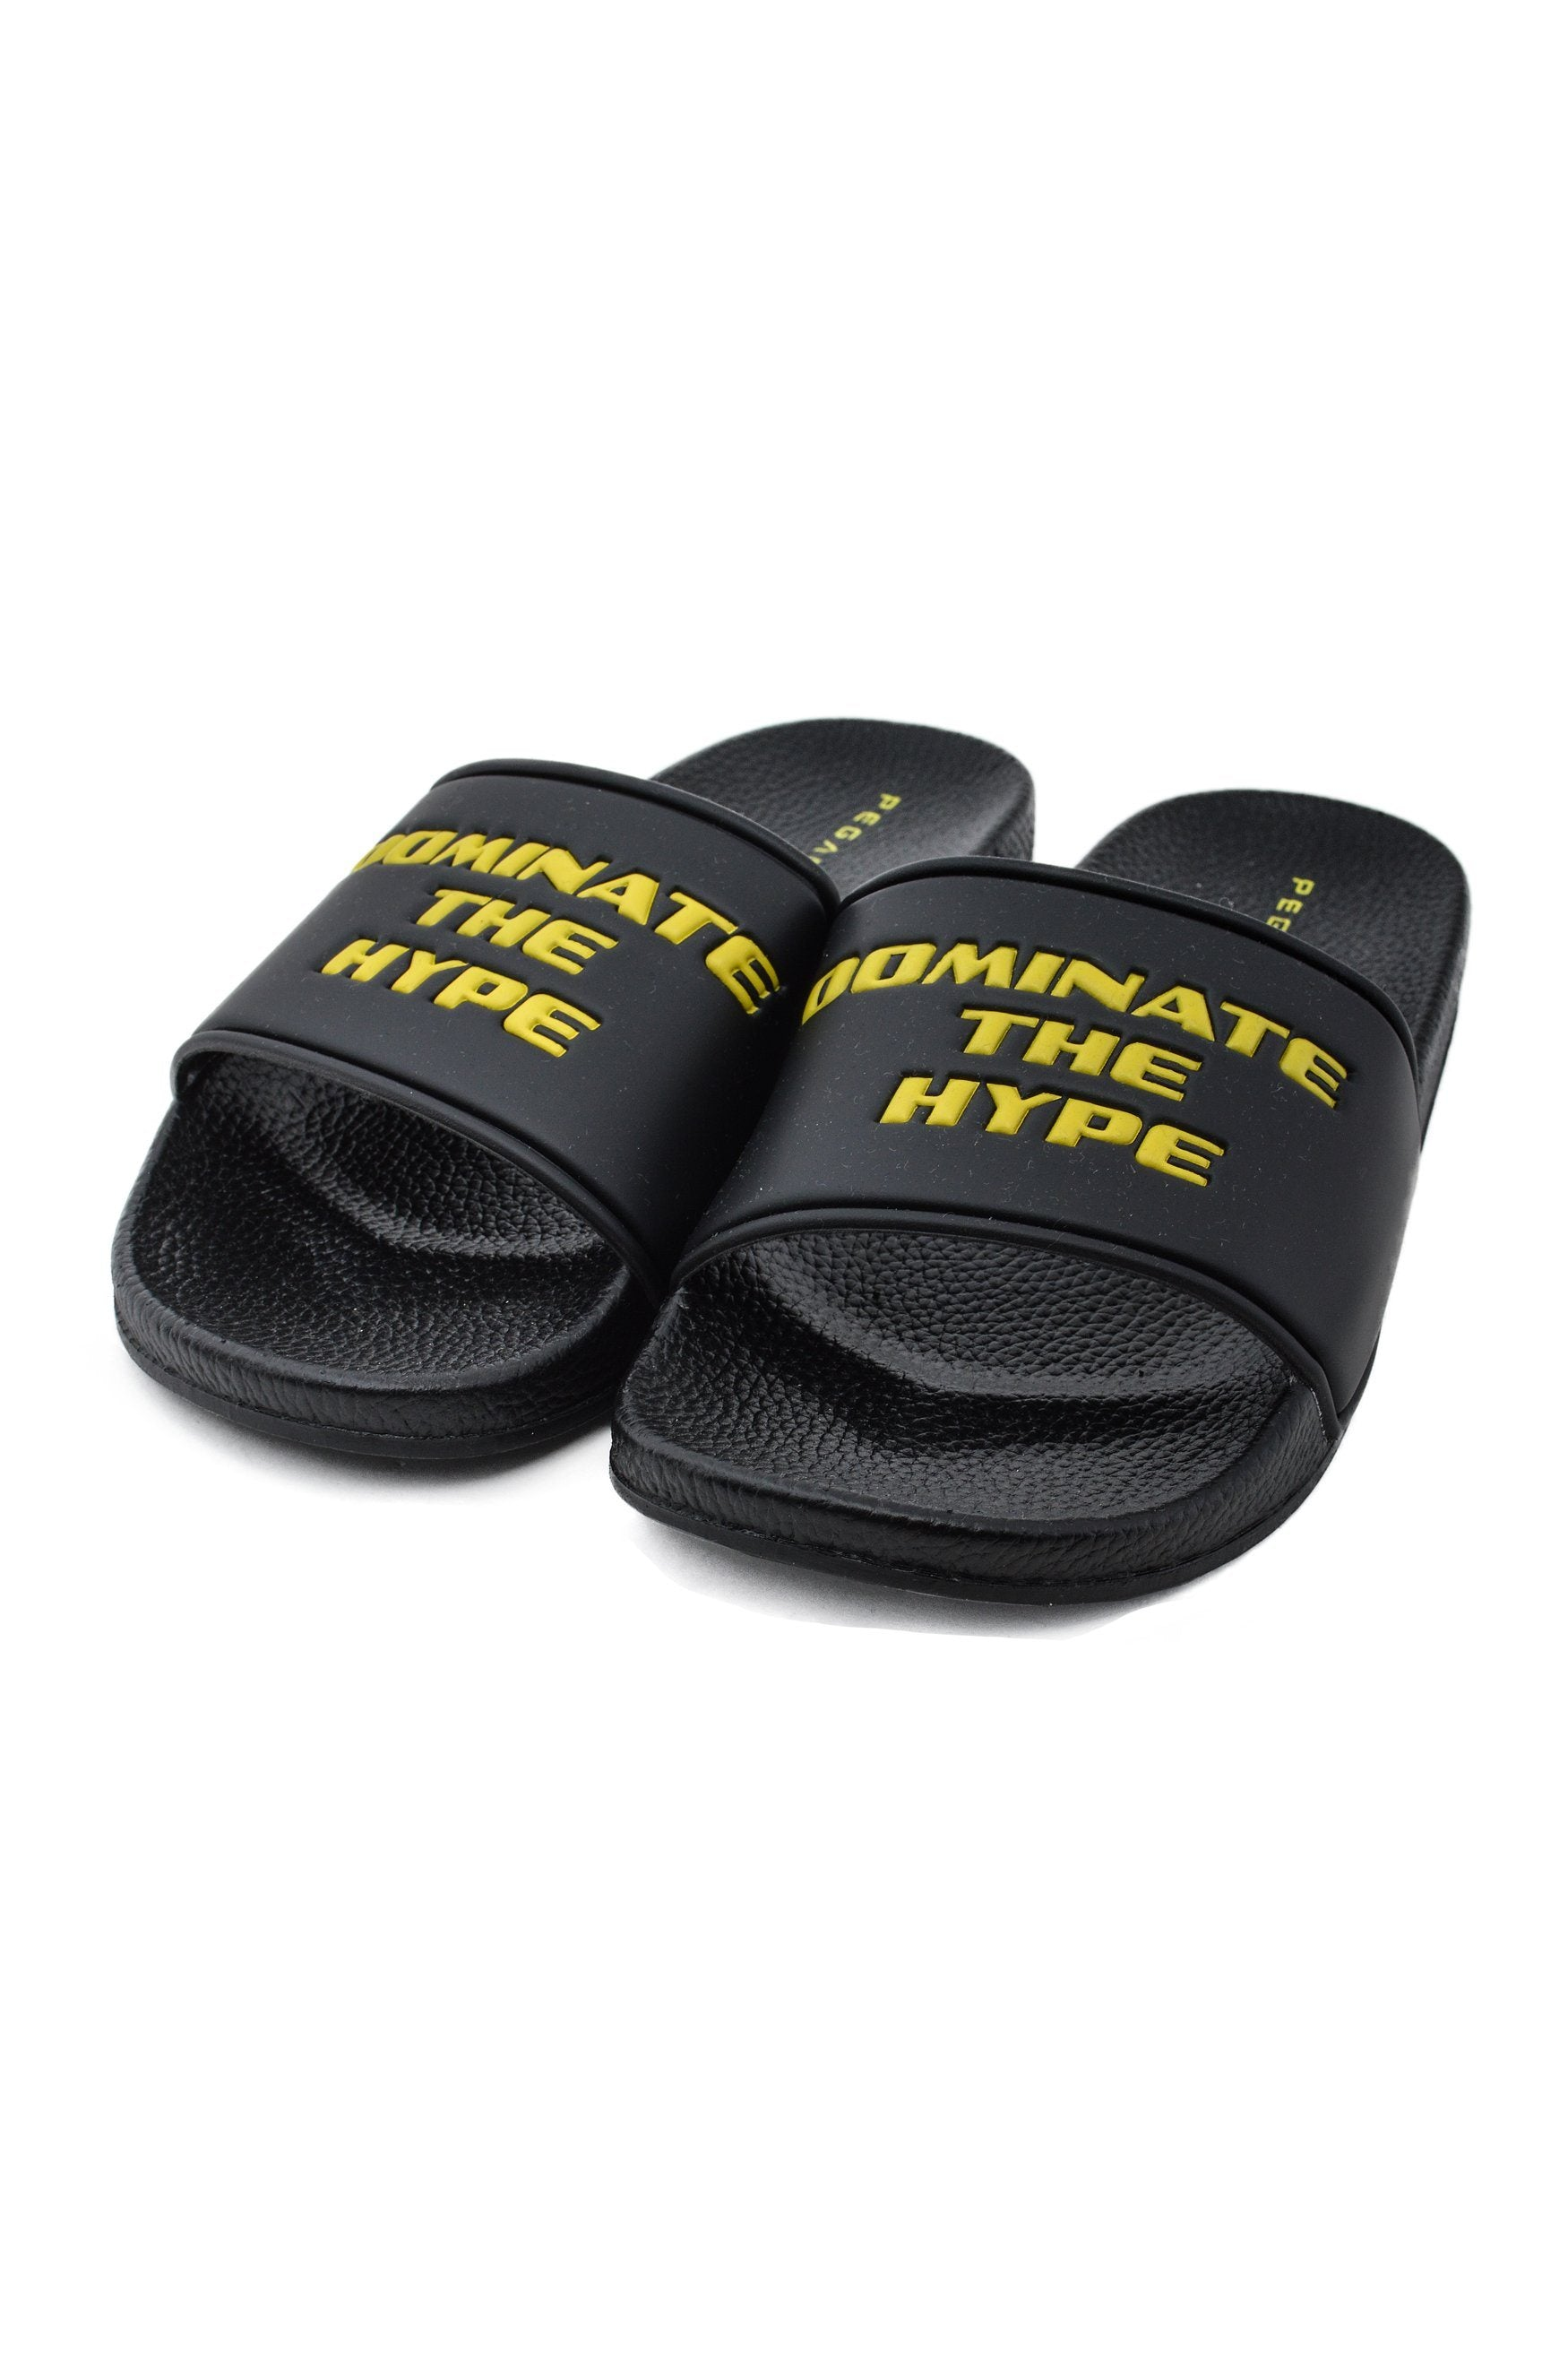 Dominate The Hype Sliders Black Shoes PEGADOR